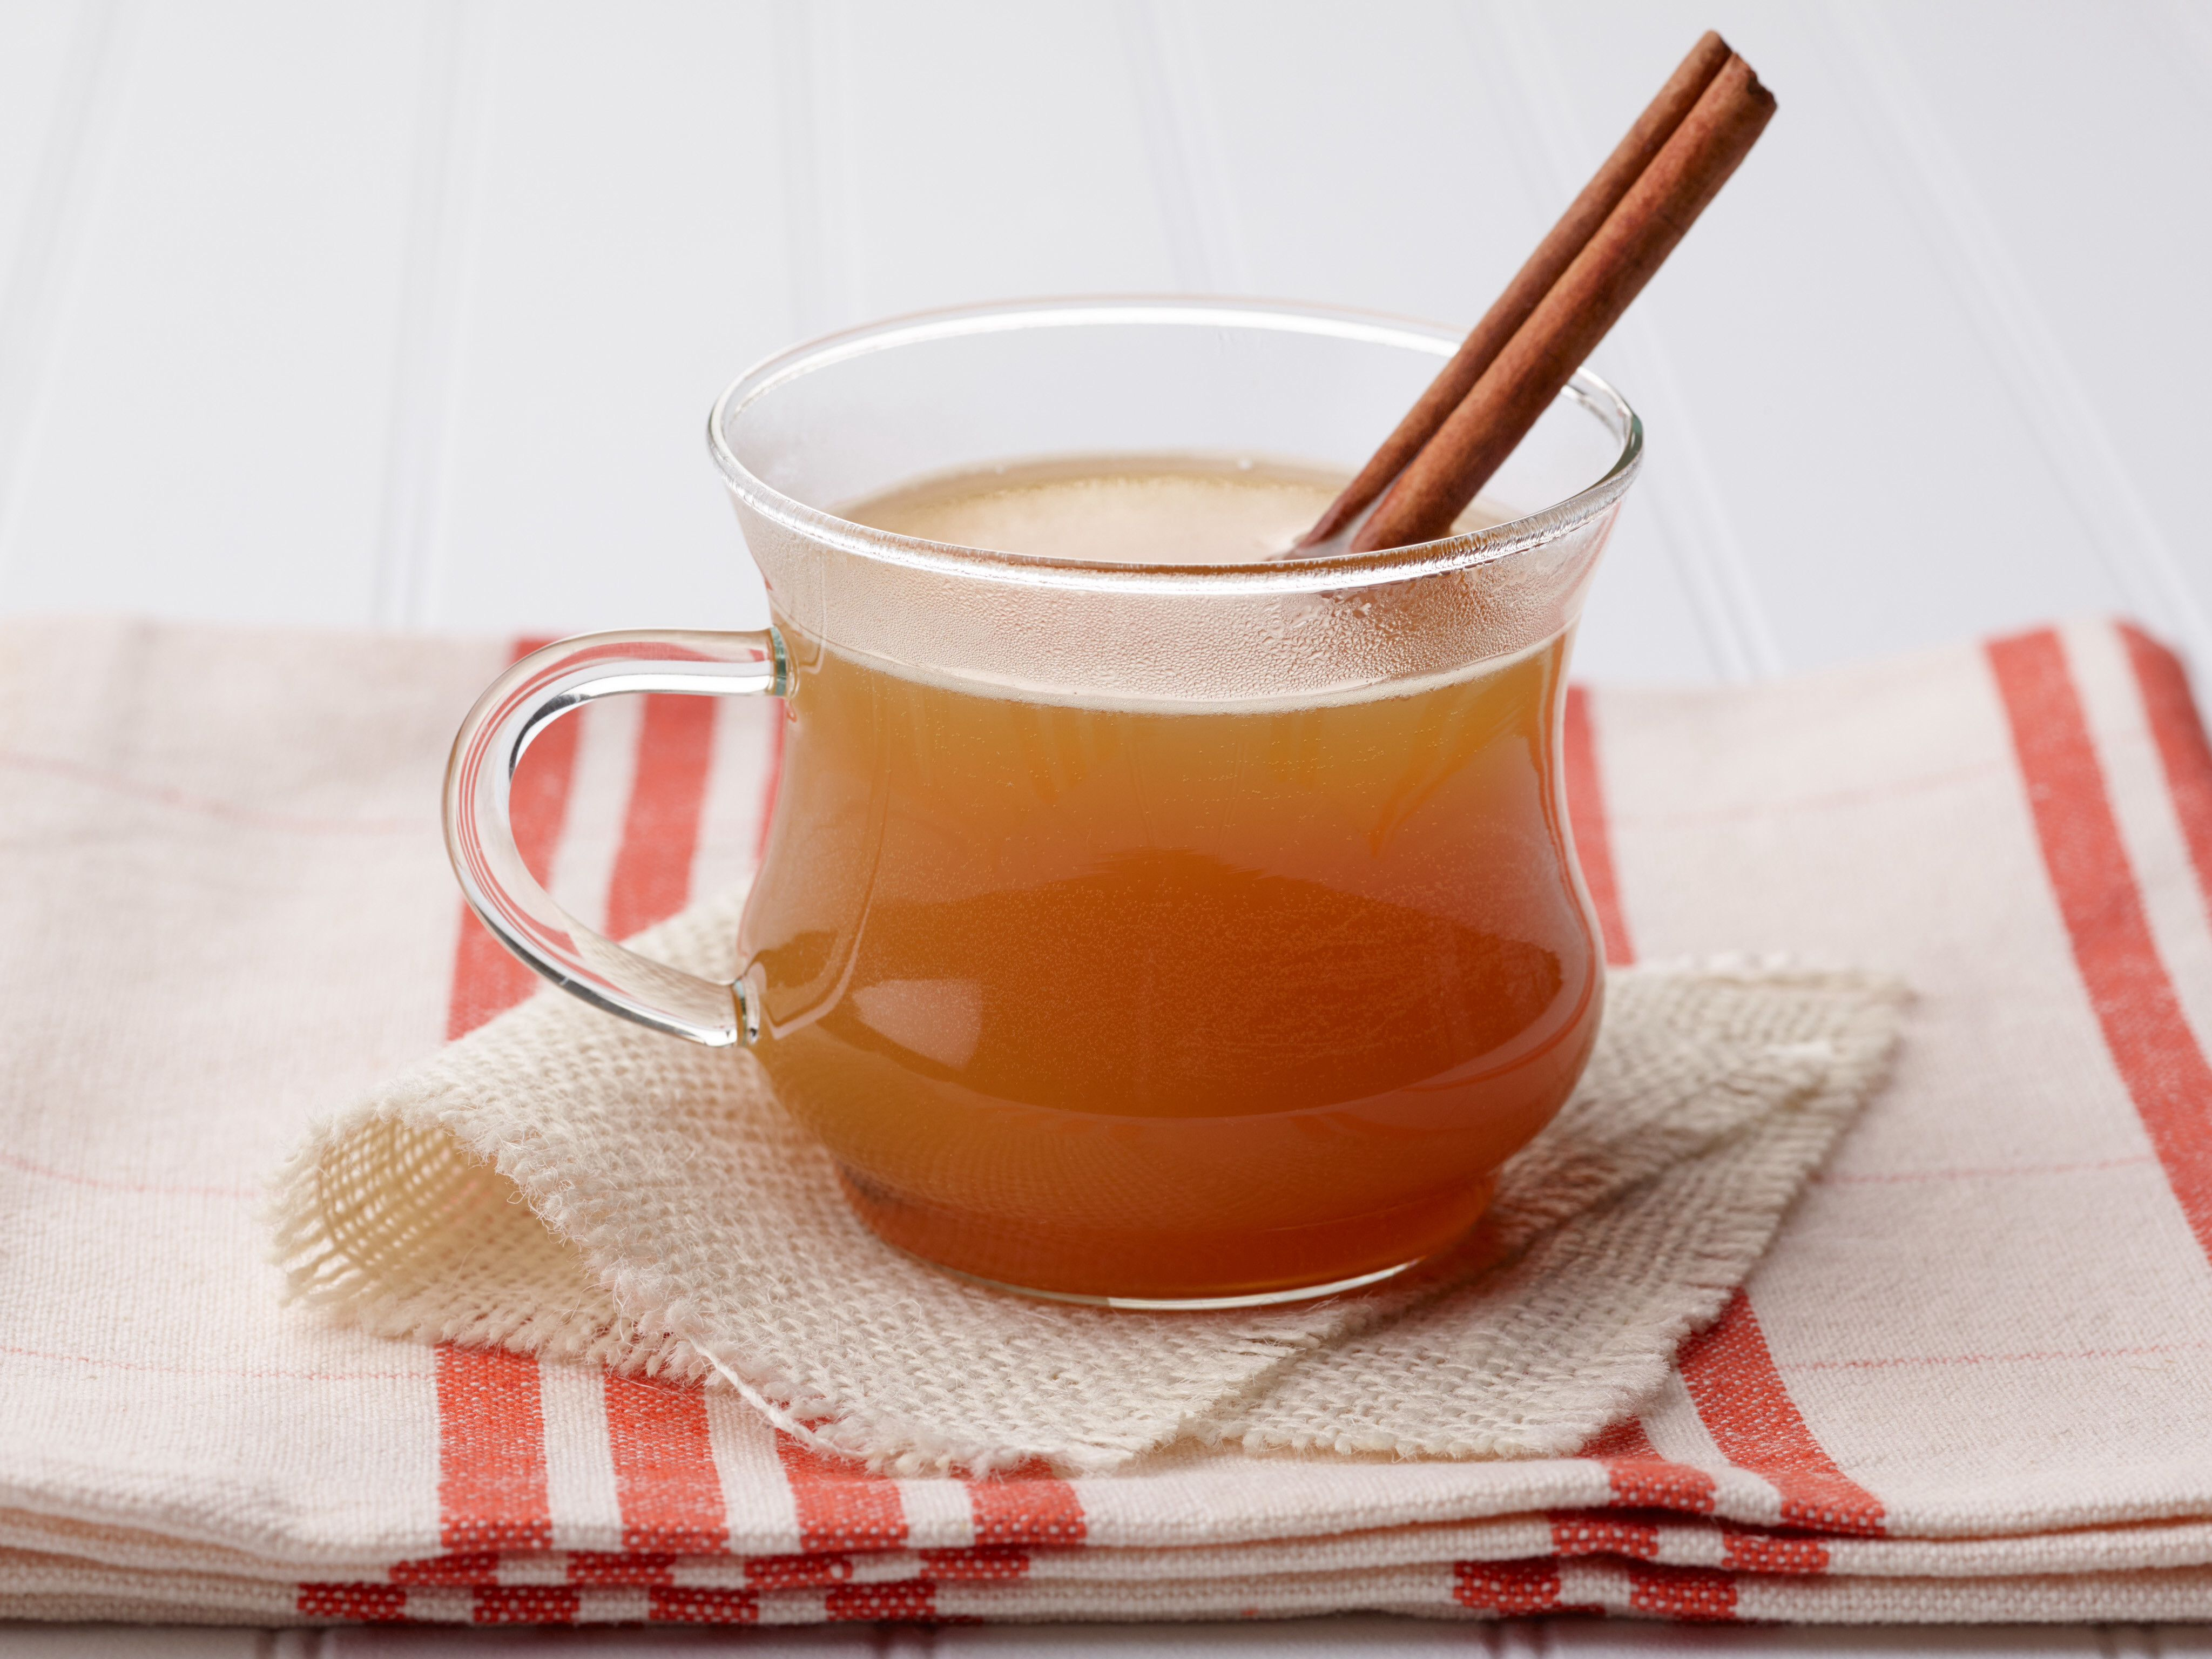 Spiced Cider Farmhouse rules recipes, Food network